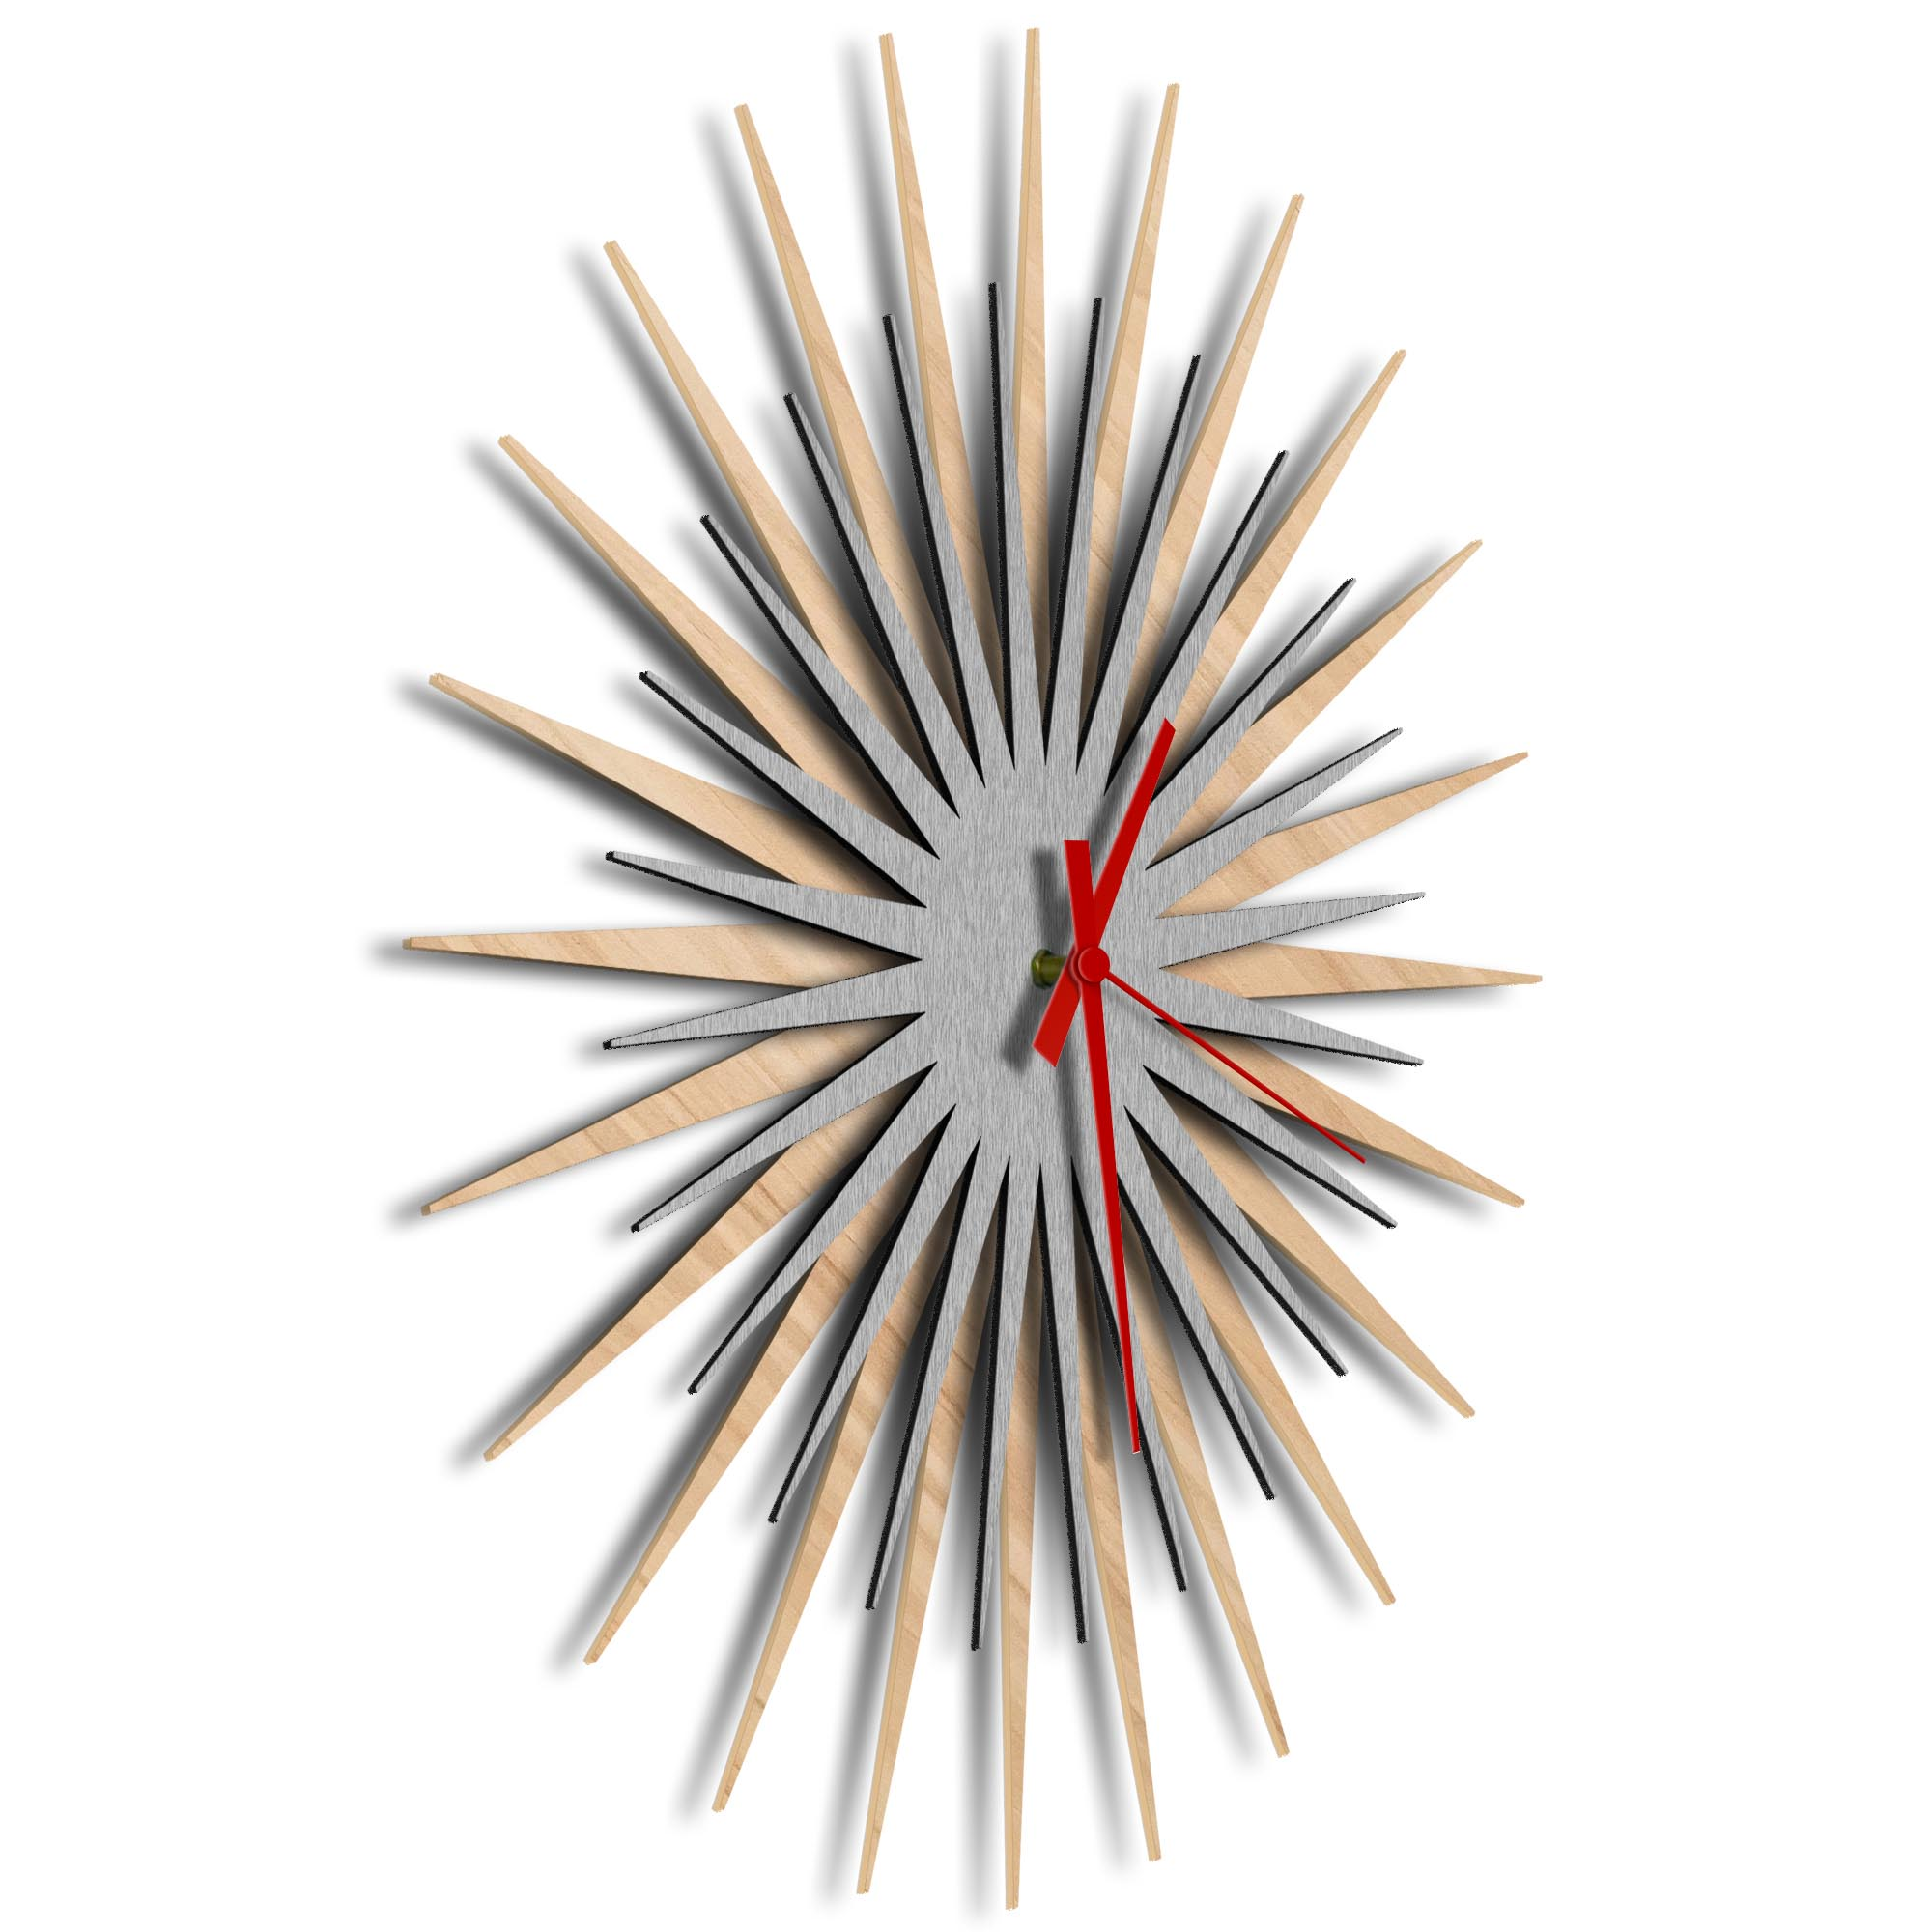 Atomic Era Clock Maple Silver Red by Adam Schwoeppe - Mid-Century Modern Clock on Brushed Maple Polymetal - Image 2